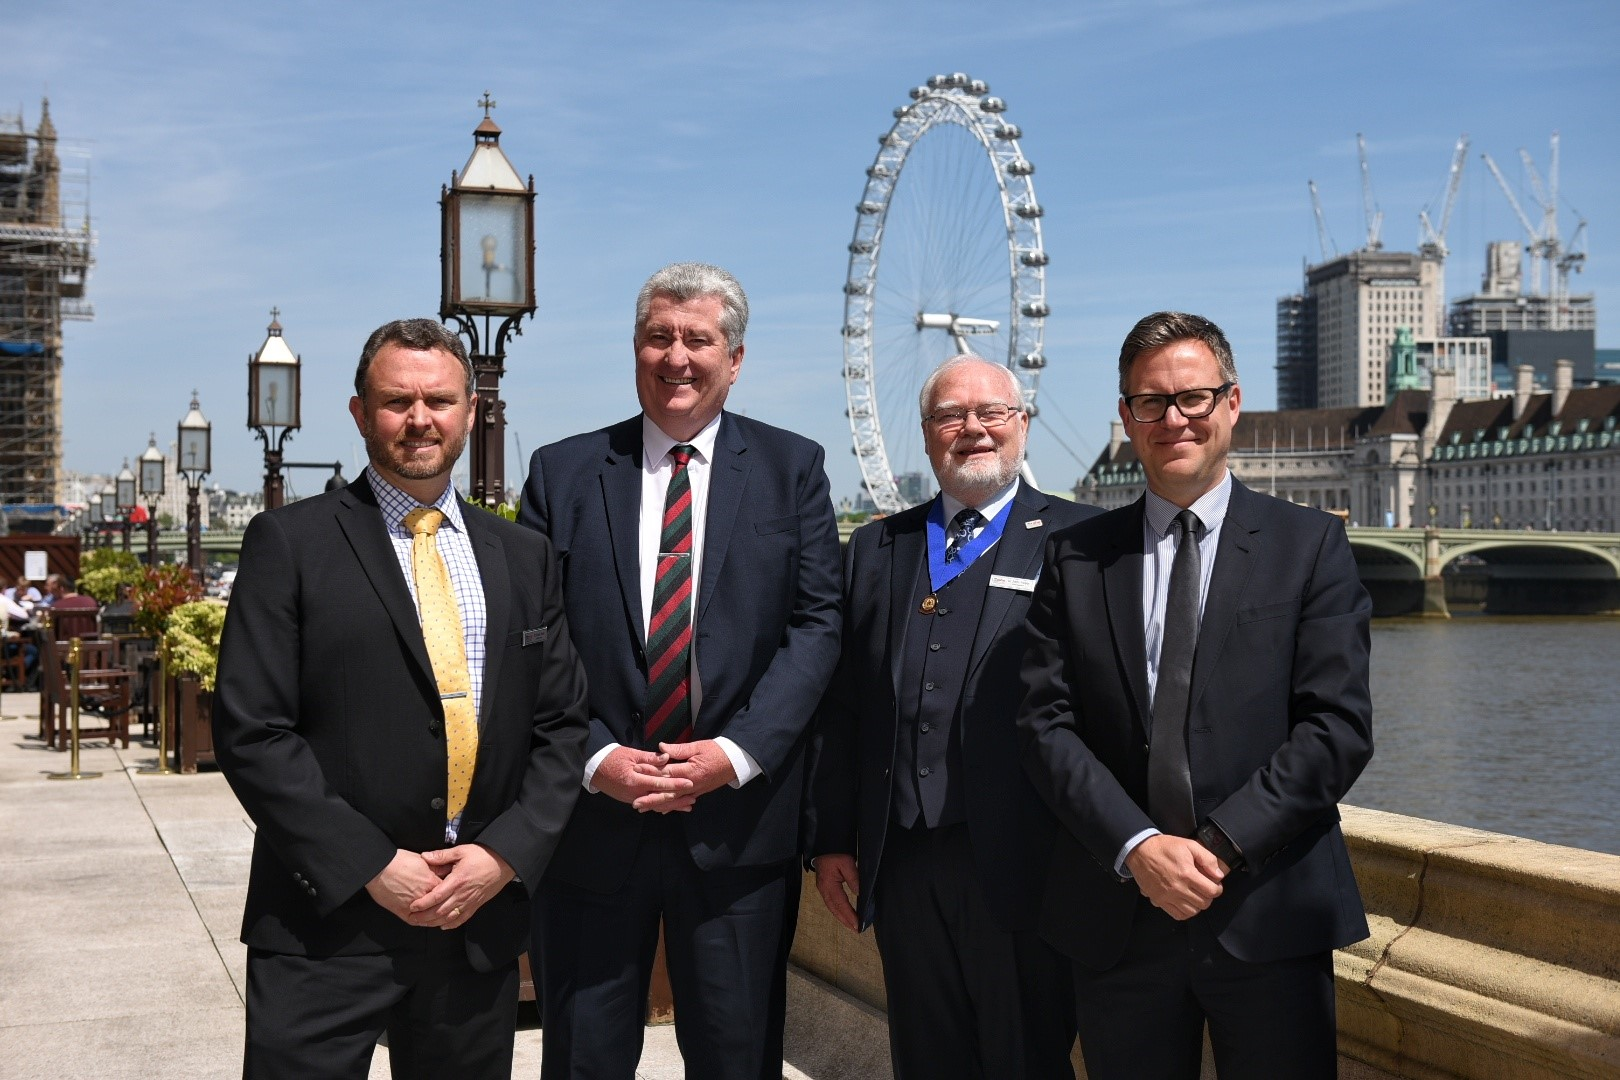 CABE MEMBERS VOTE IN FAVOUR OF  CHARTERED ENGINEER STATUS